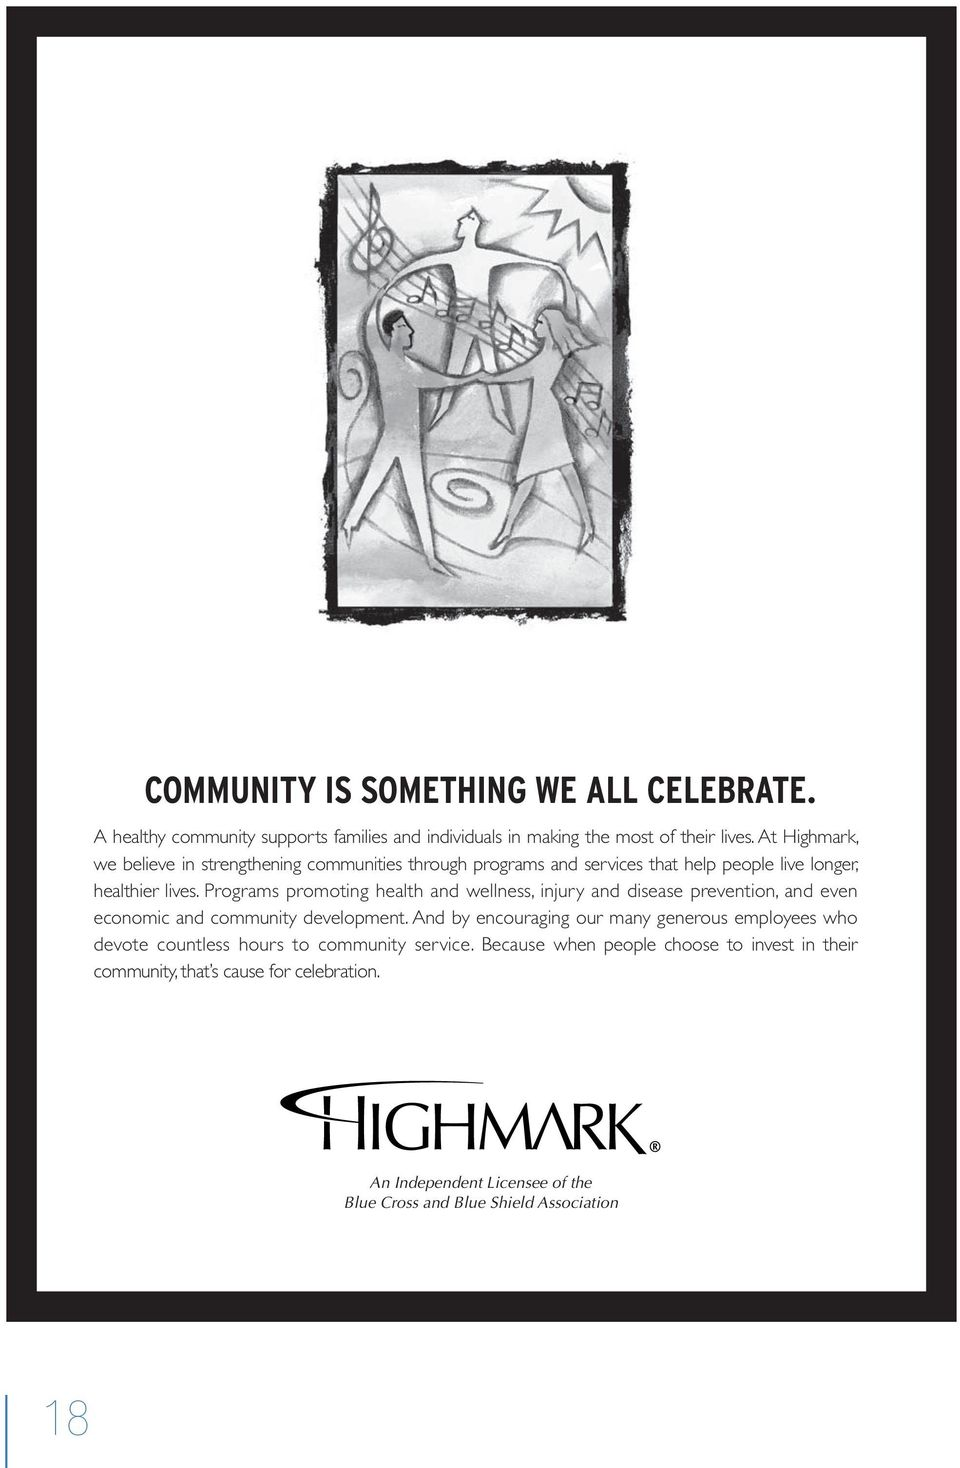 At Highmark, we believe i stregtheig commuities through programs ad services that help people live loger, healthier lives.